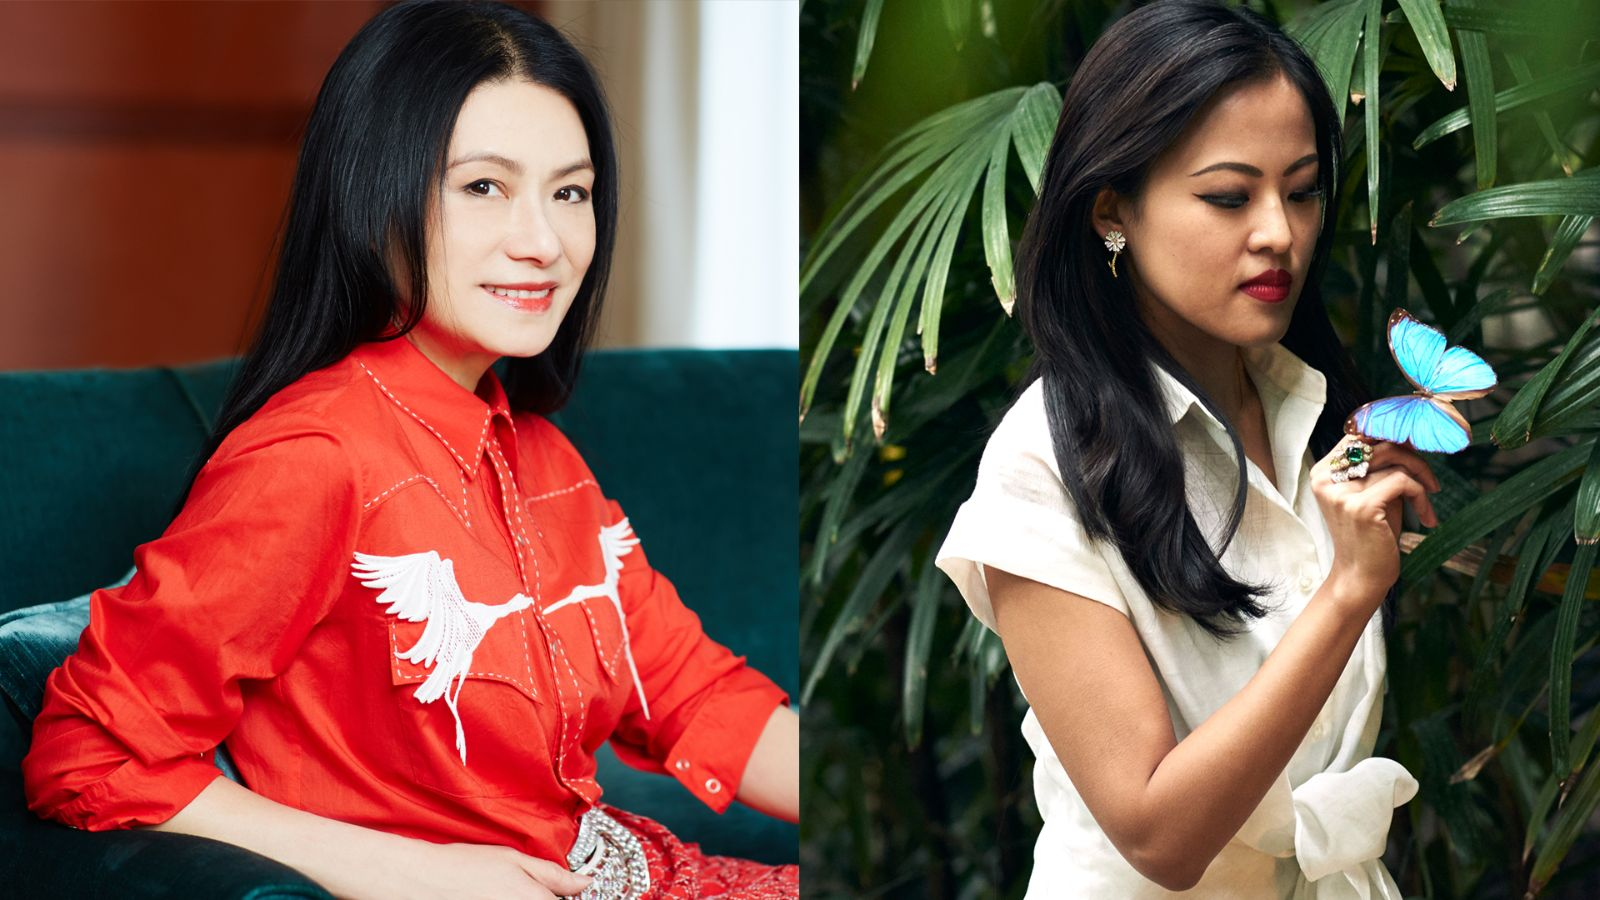 A designer's guide to Hong Kong, with Vivienne Tam & Anabela Chan